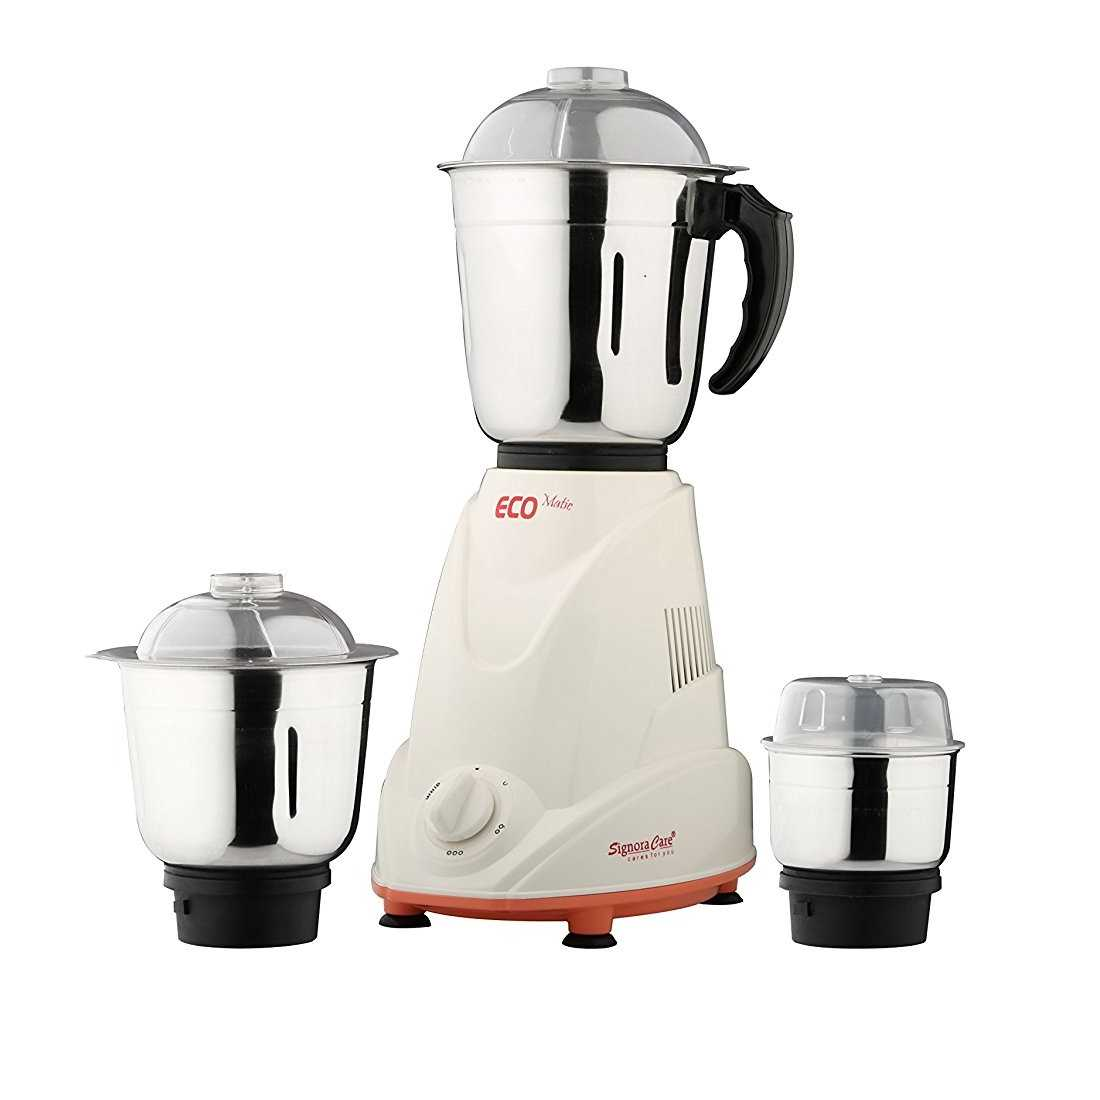 SignoraCare Eco Matic 550 W Mixer Grinder